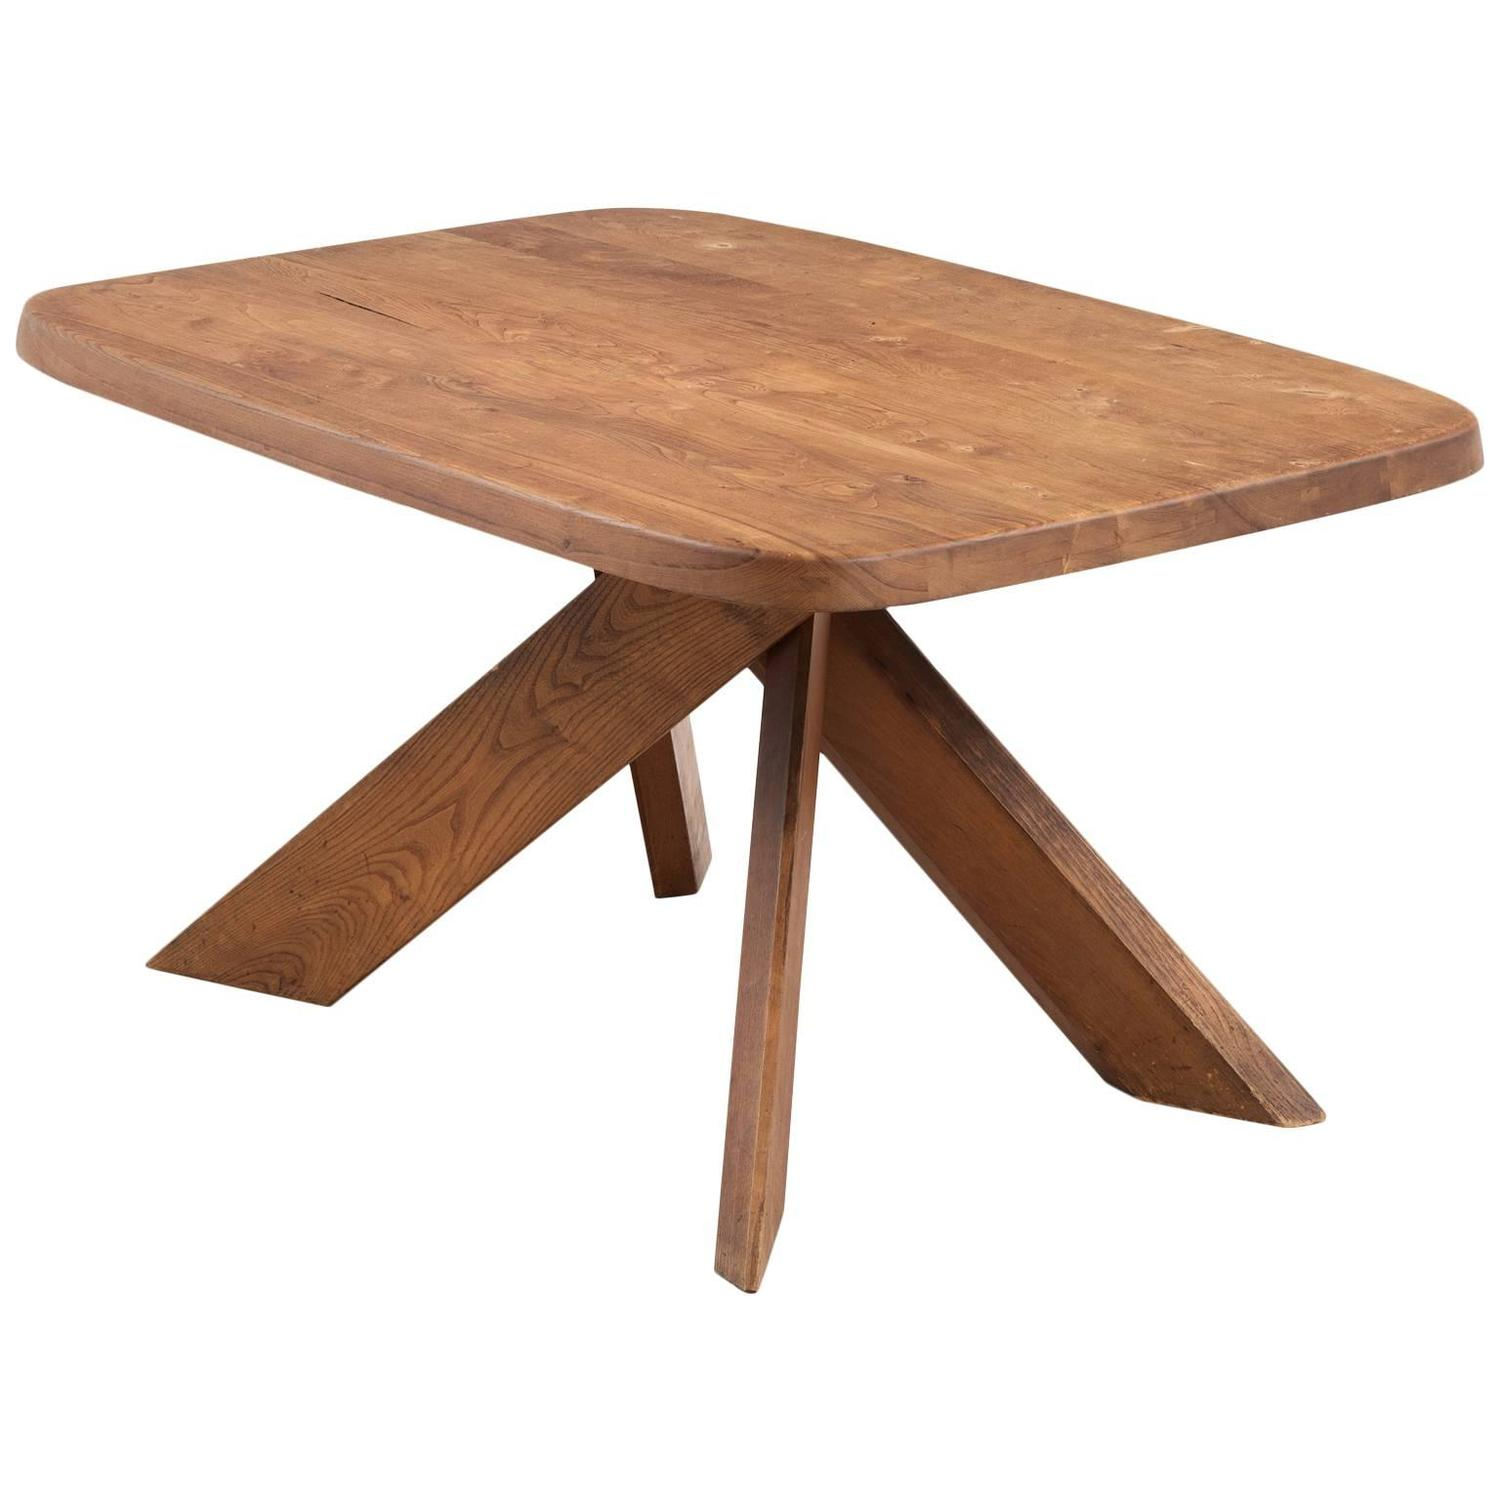 Pierre chapo t35b small dining table with unique natural for Unique dining tables for sale